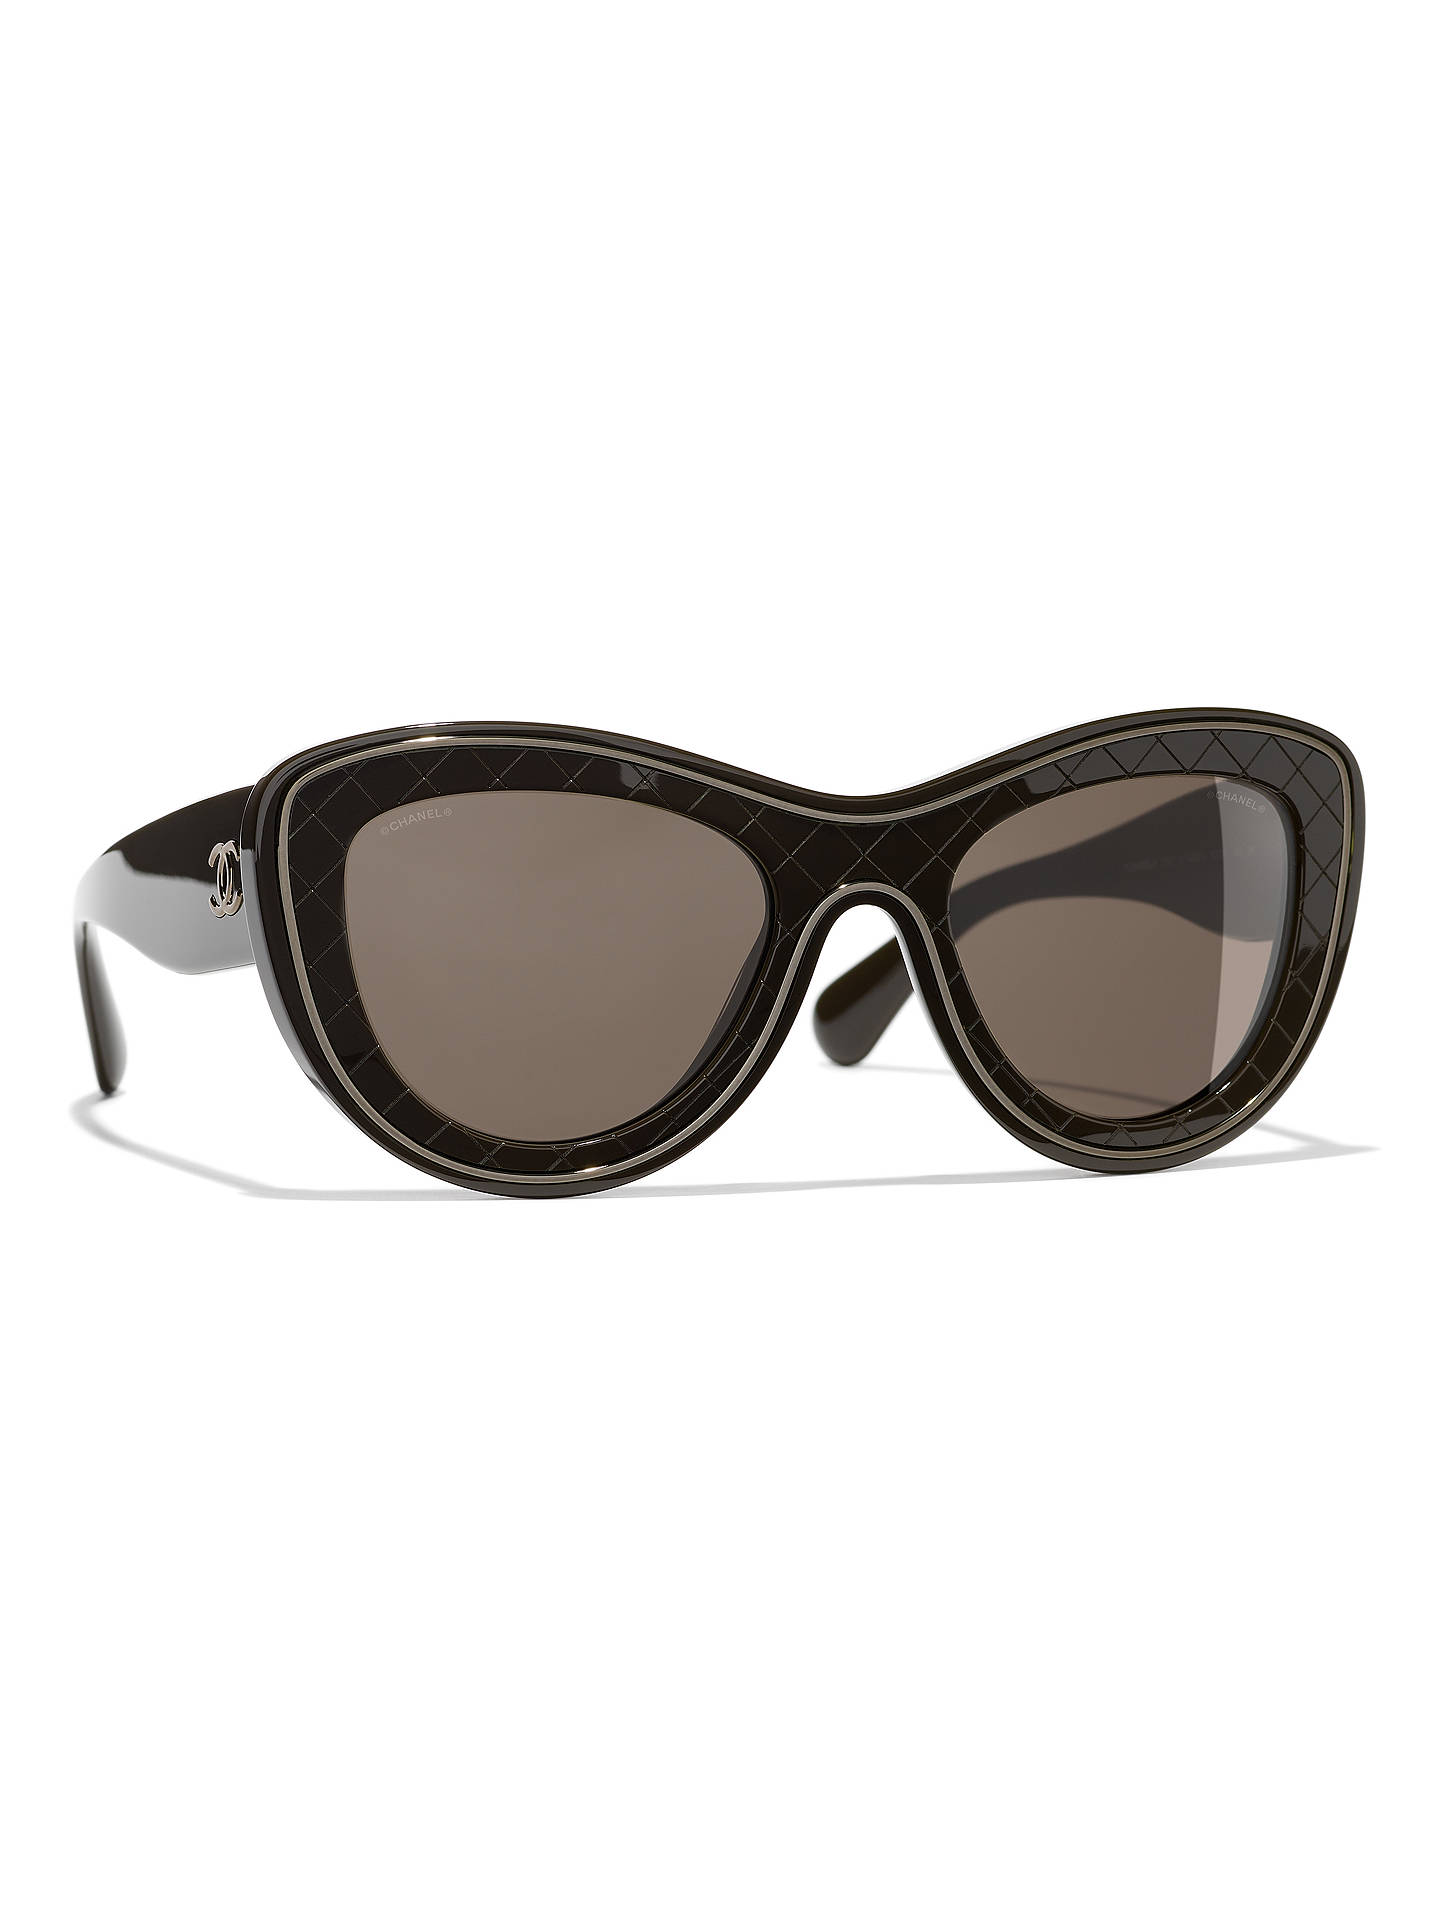 BuyCHANEL Butterfly Sunglasses CH5397 Brown/Brown Gradient Online at johnlewis.com